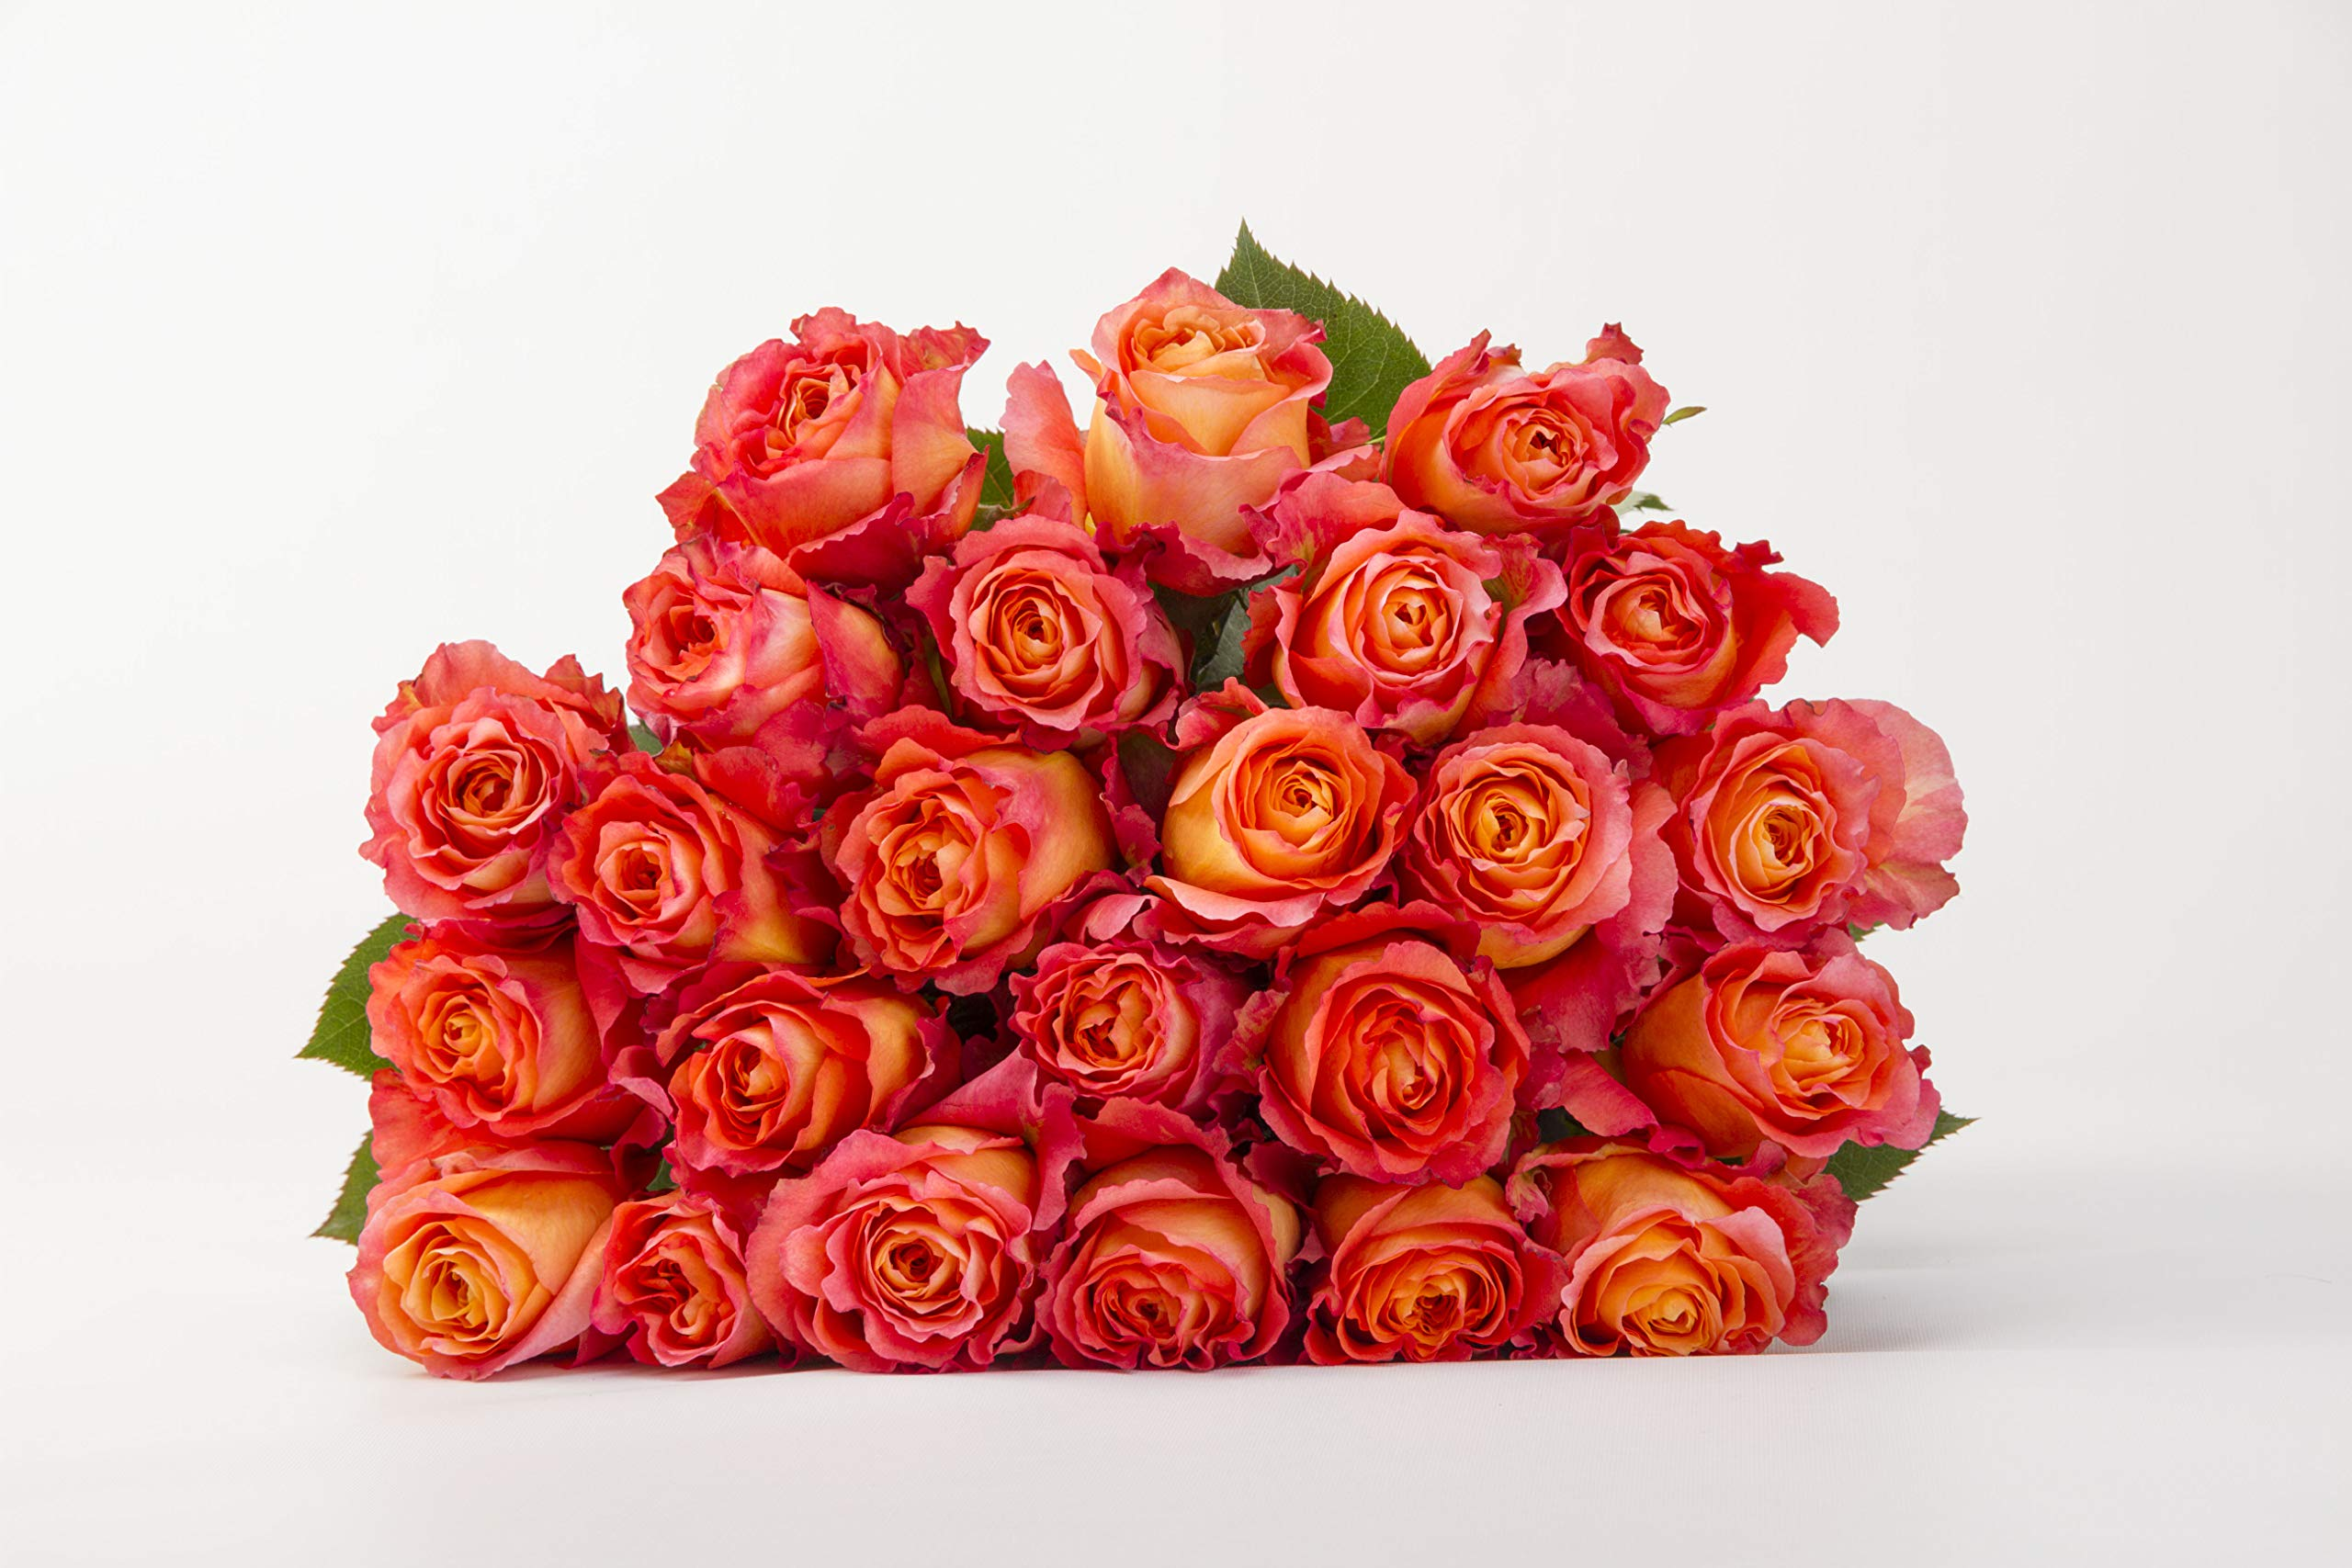 Martha Stewart Roses by BloomsyBox - Two Dozen Orange & Pink Free Spirit Roses Selected by Martha and Hand-Tied, Long Vase Life